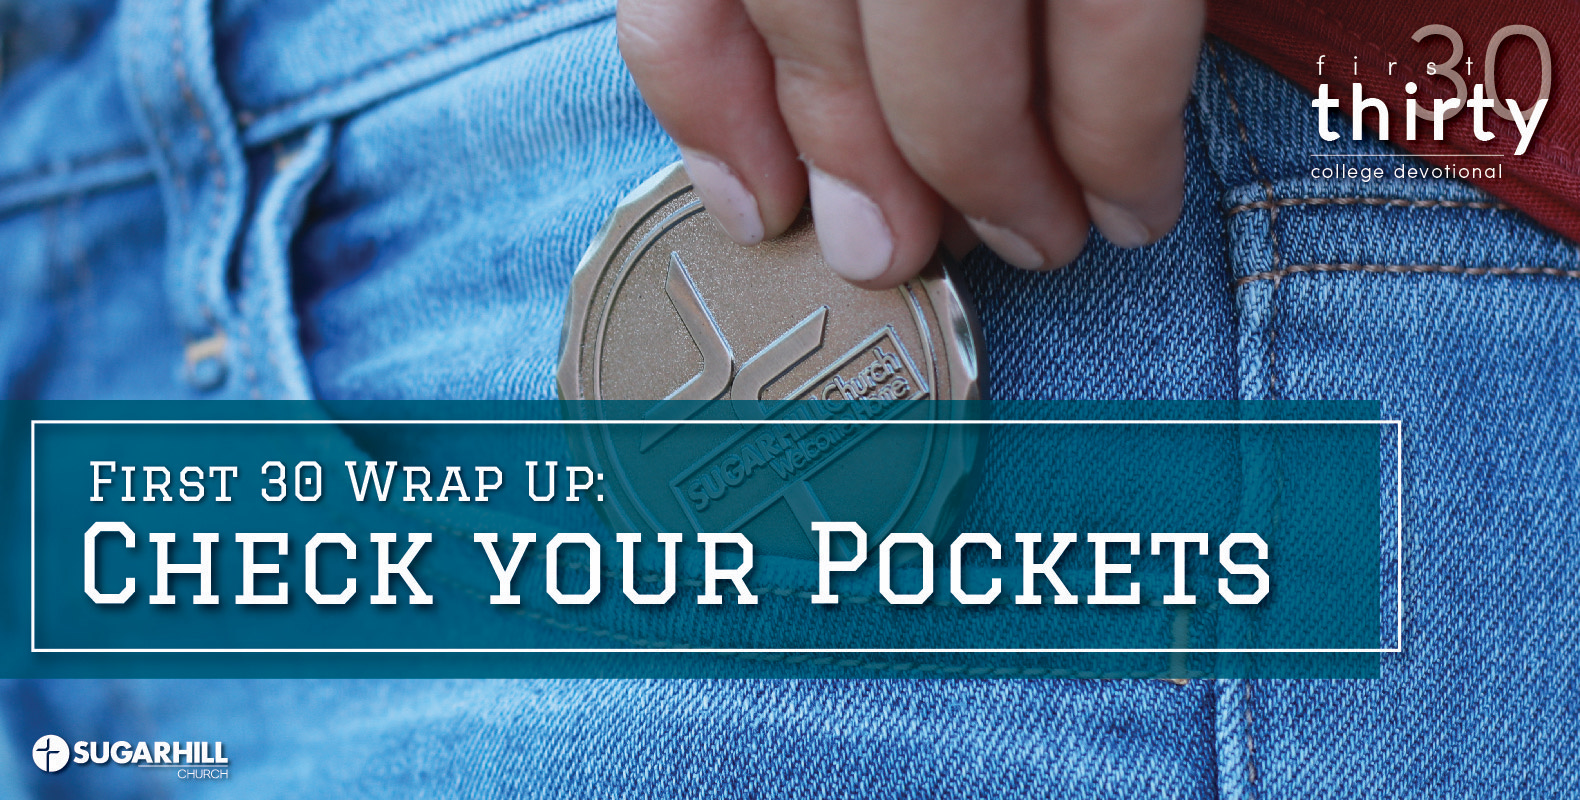 Tripp Atkinson First Thirty Blog Check Your Pockets Challenge Coin